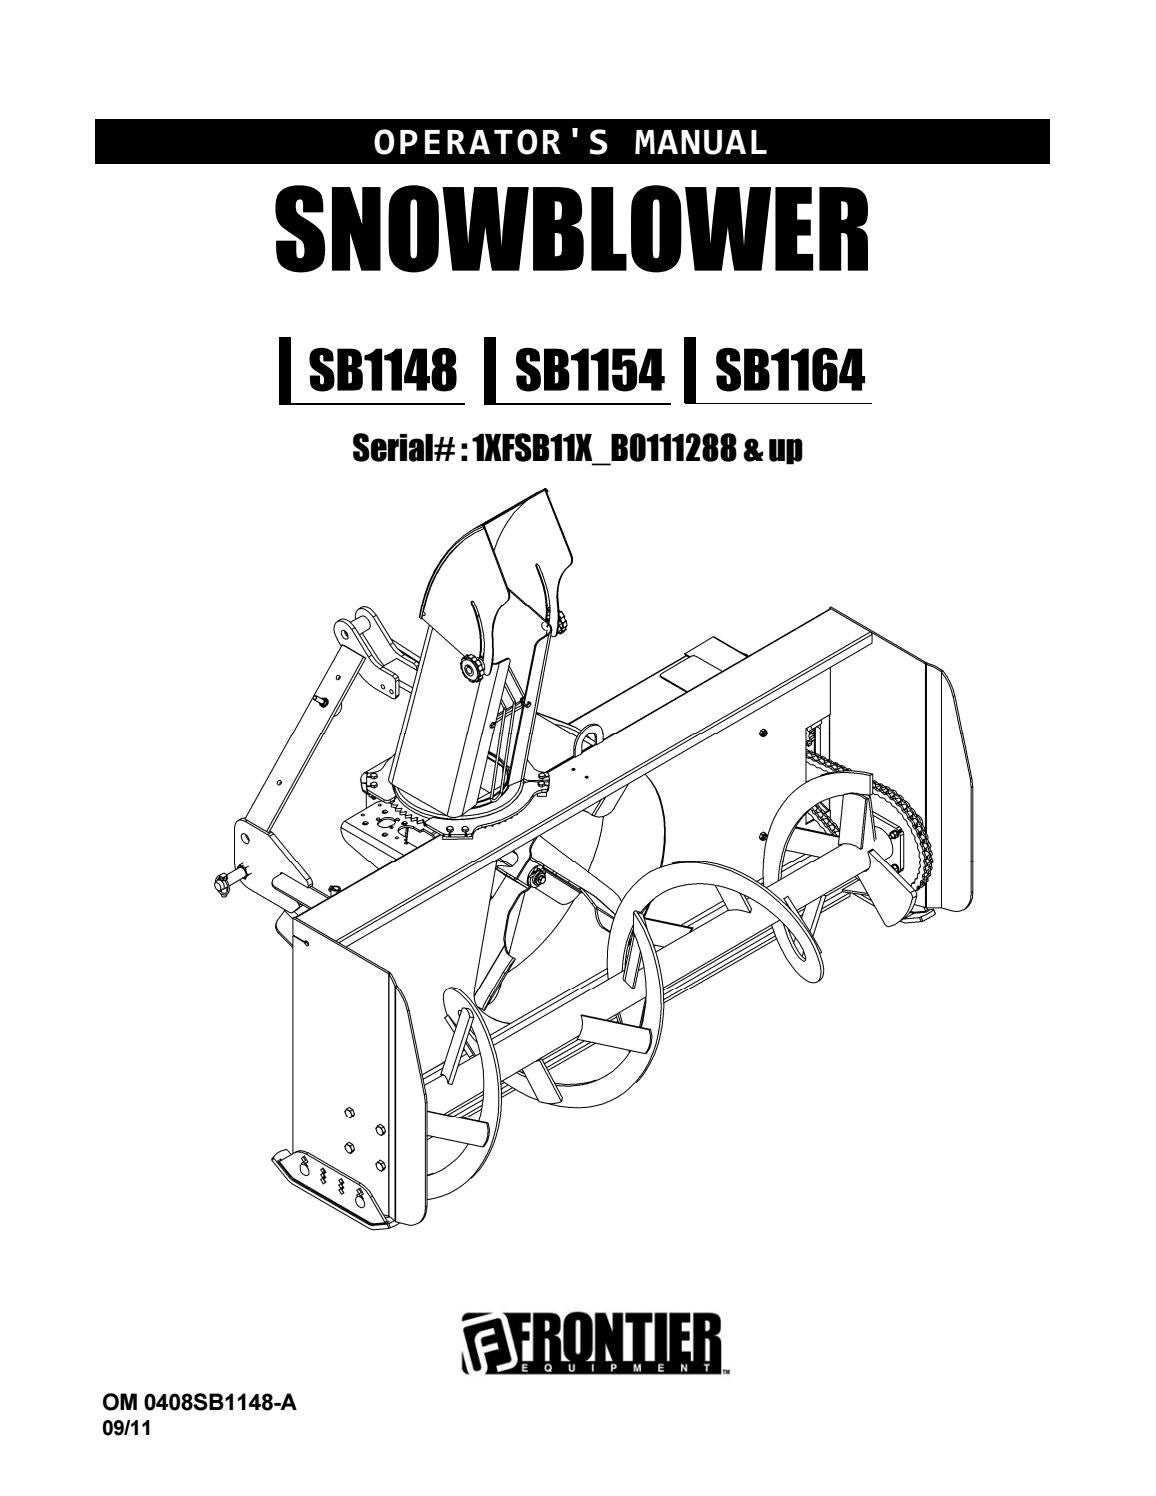 Snowblower Wiring Diagram - Wildfire 110cc Atv Wiring Diagram | Bege Wiring  Diagram | Wildcat Snowblower Parts Diagram Wiring |  | Bege Wiring Diagram